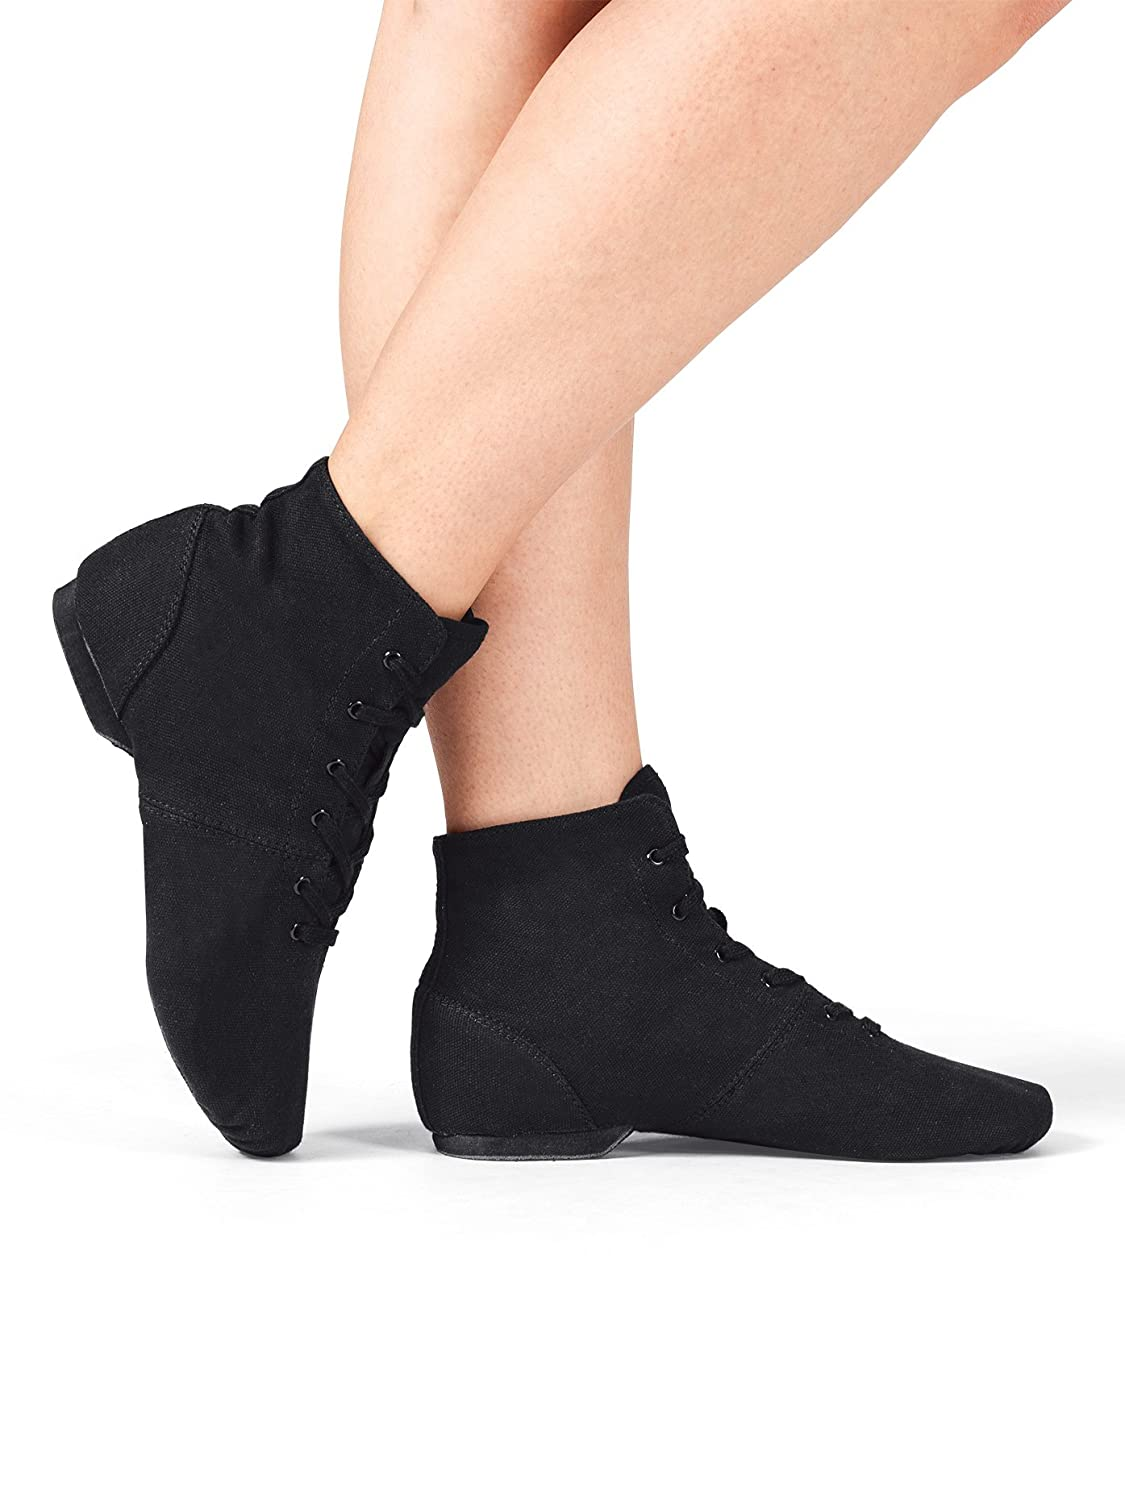 Vintage Boots, Granny Boots, Retro Boots Adult Broadway Jazz Over-the-Ankle Canvas Jazz BootT7502 $78.26 AT vintagedancer.com